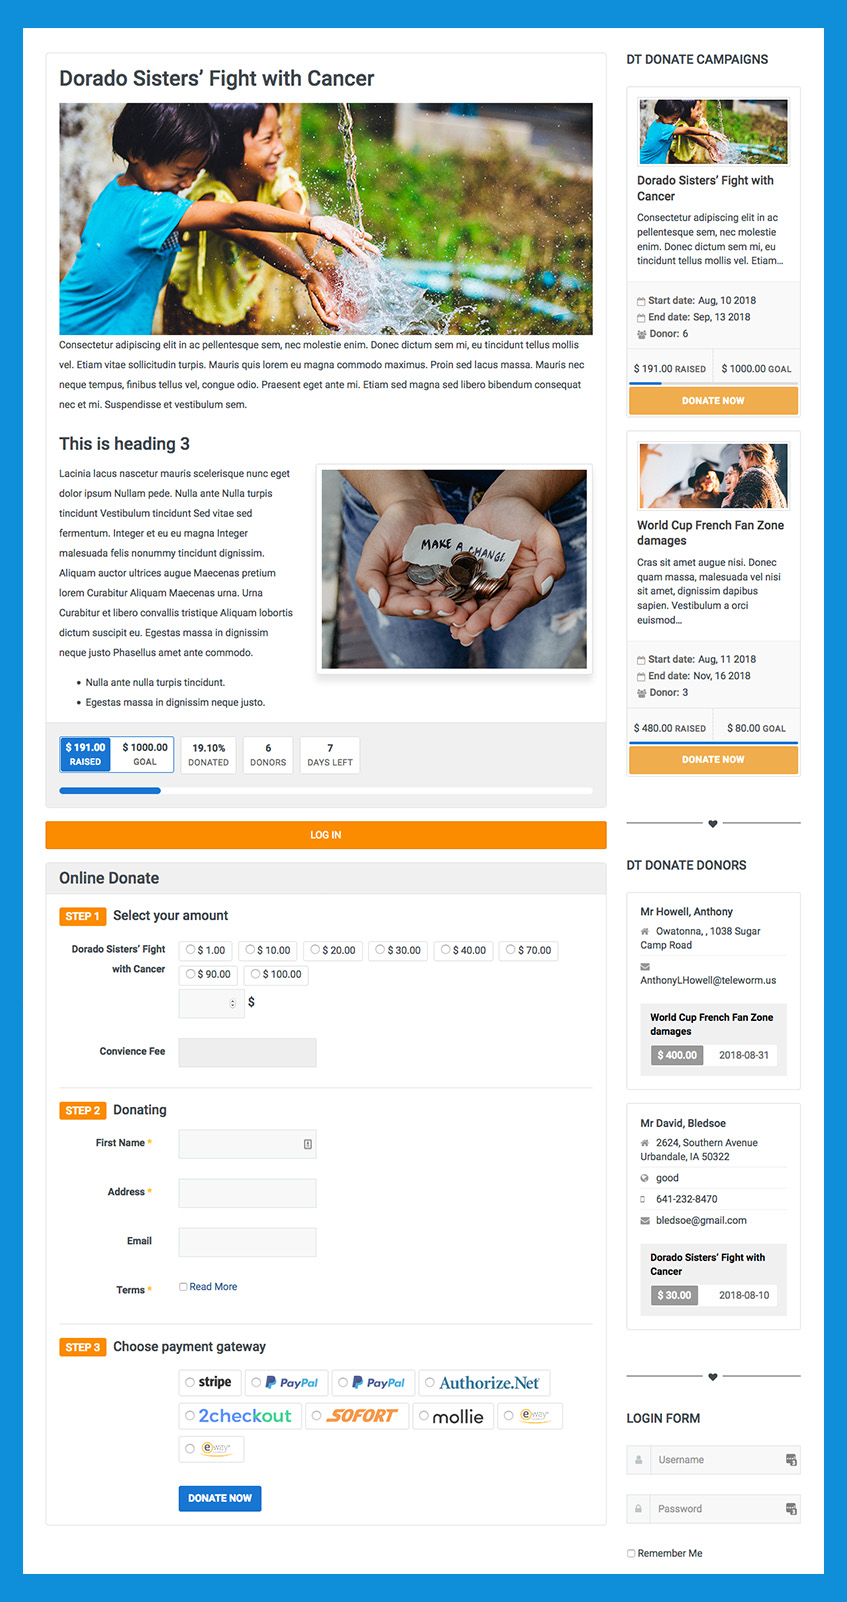 Donation campaign detail page of Joomla donation extension DT donate